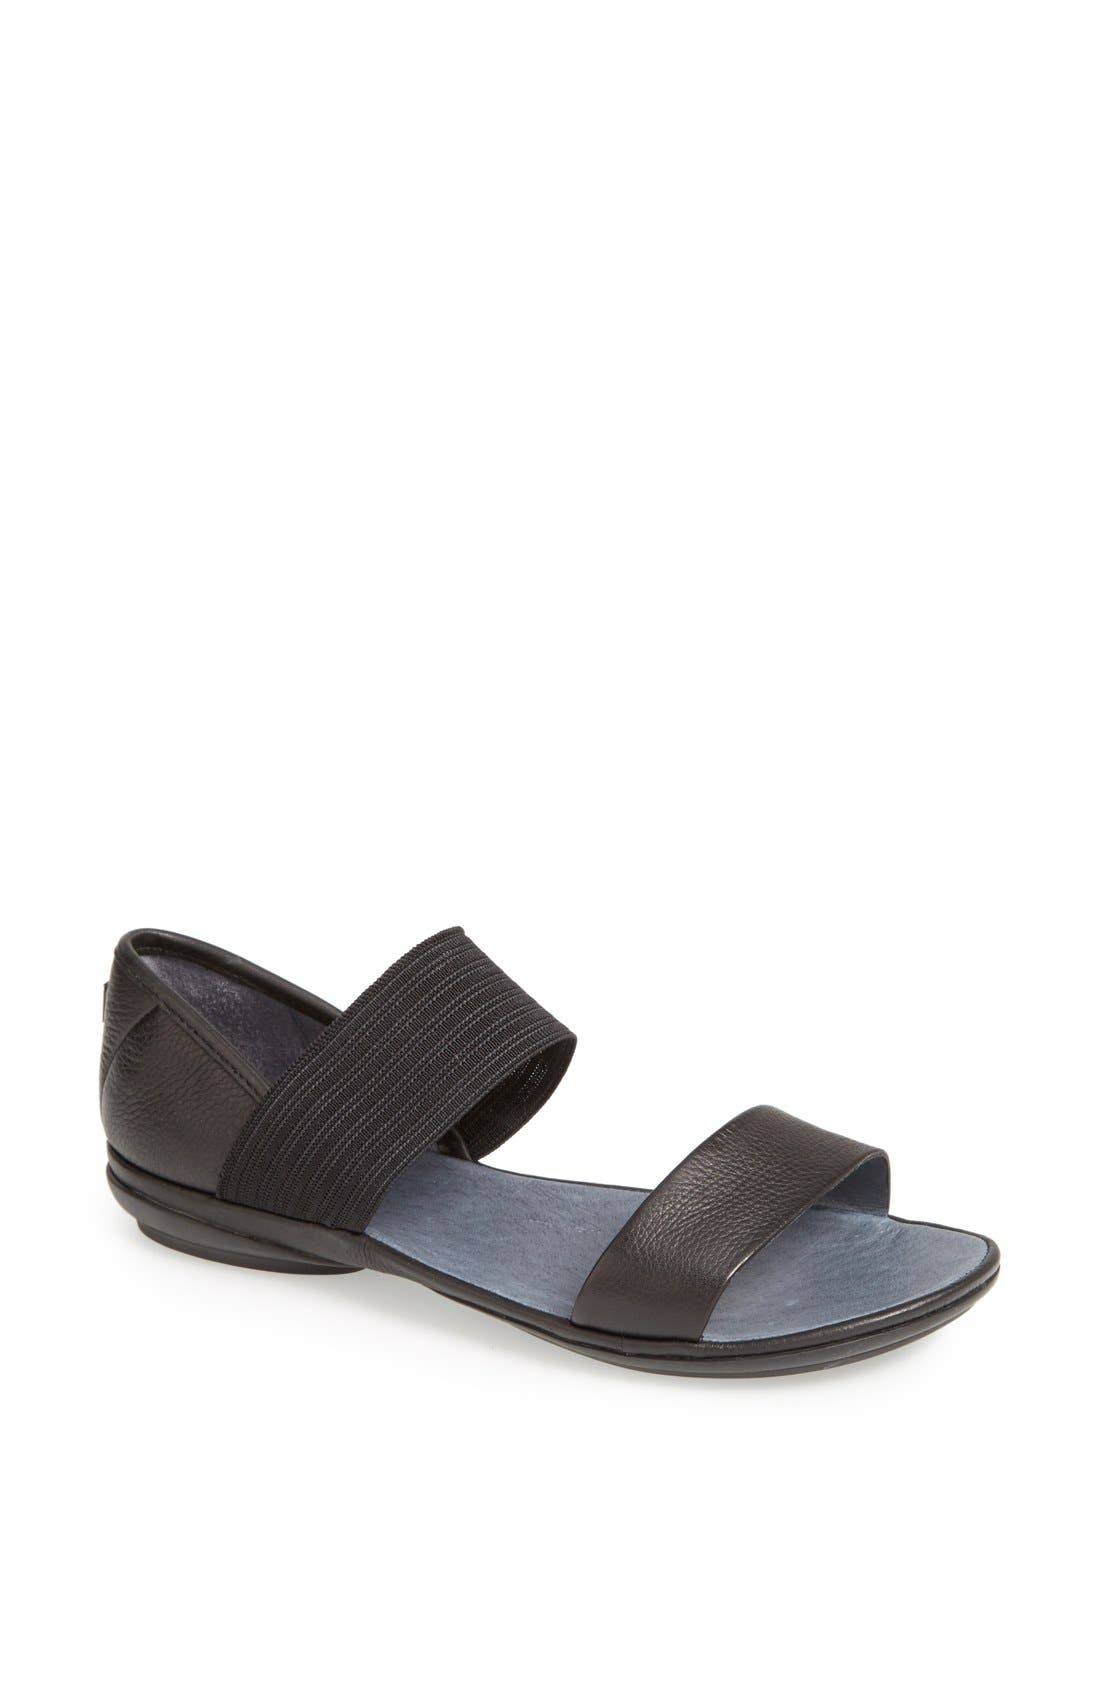 Alternate Image 1 Selected - Camper 'Right Nina' Sandal